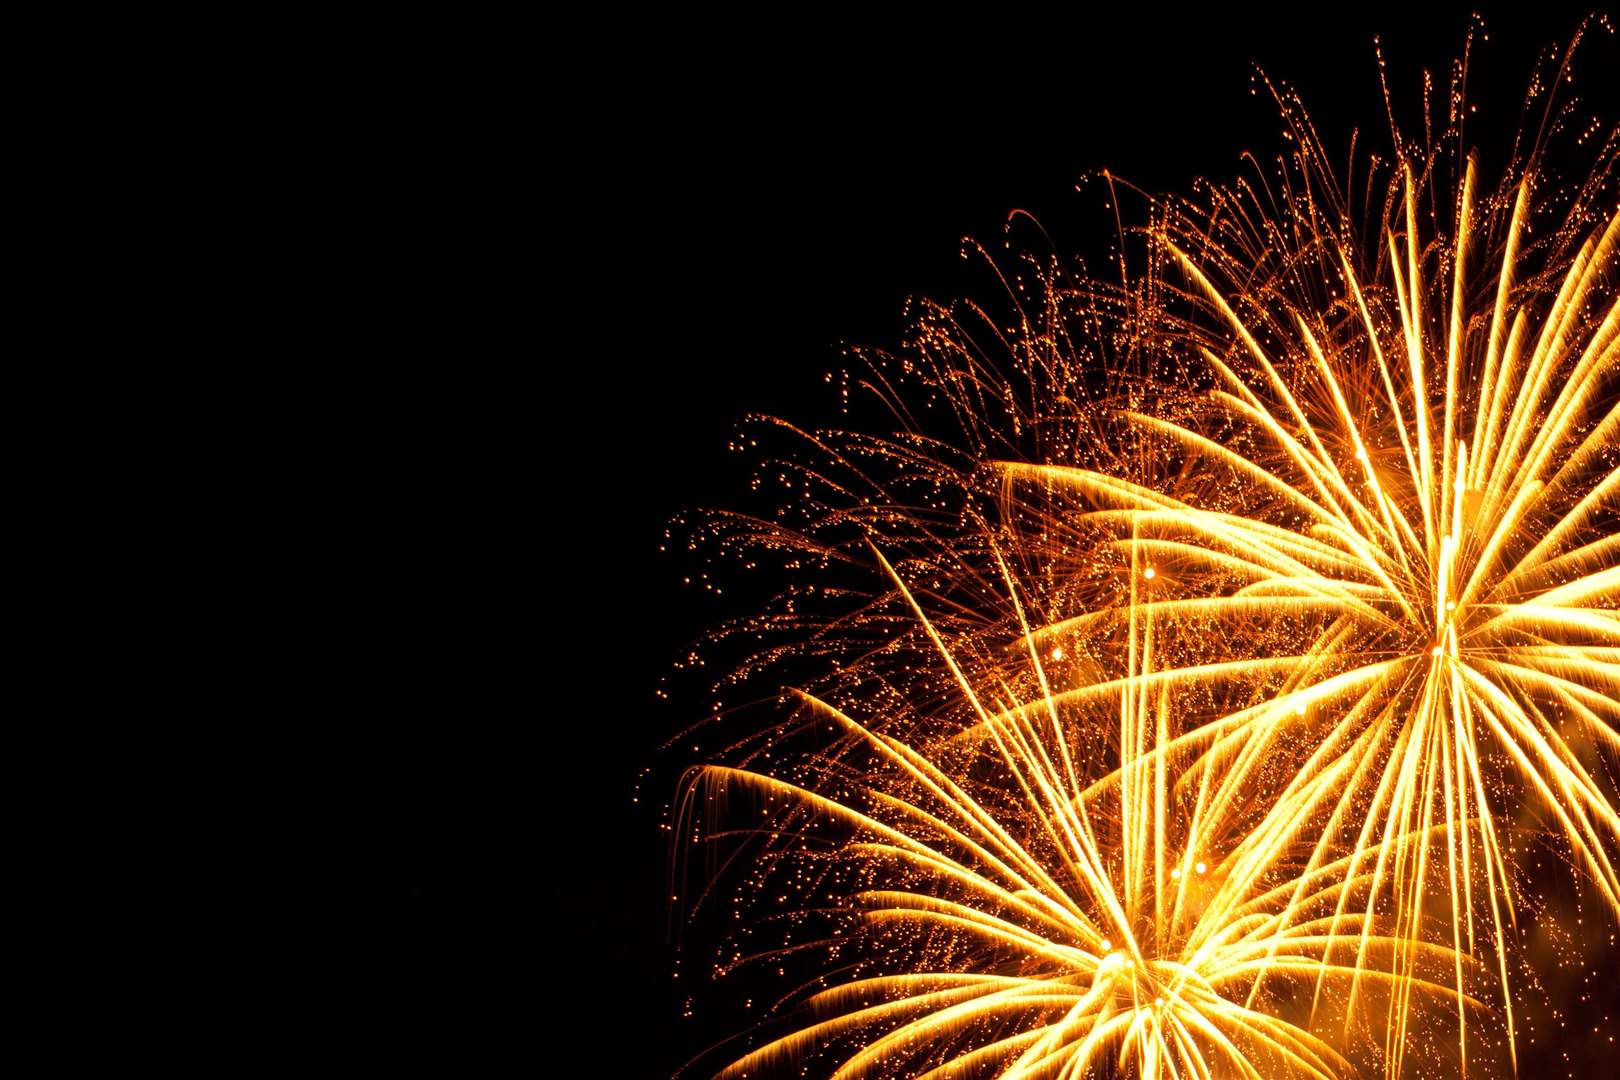 Enjoy a fireworks display in Donington on Friday, at the Community Centre.